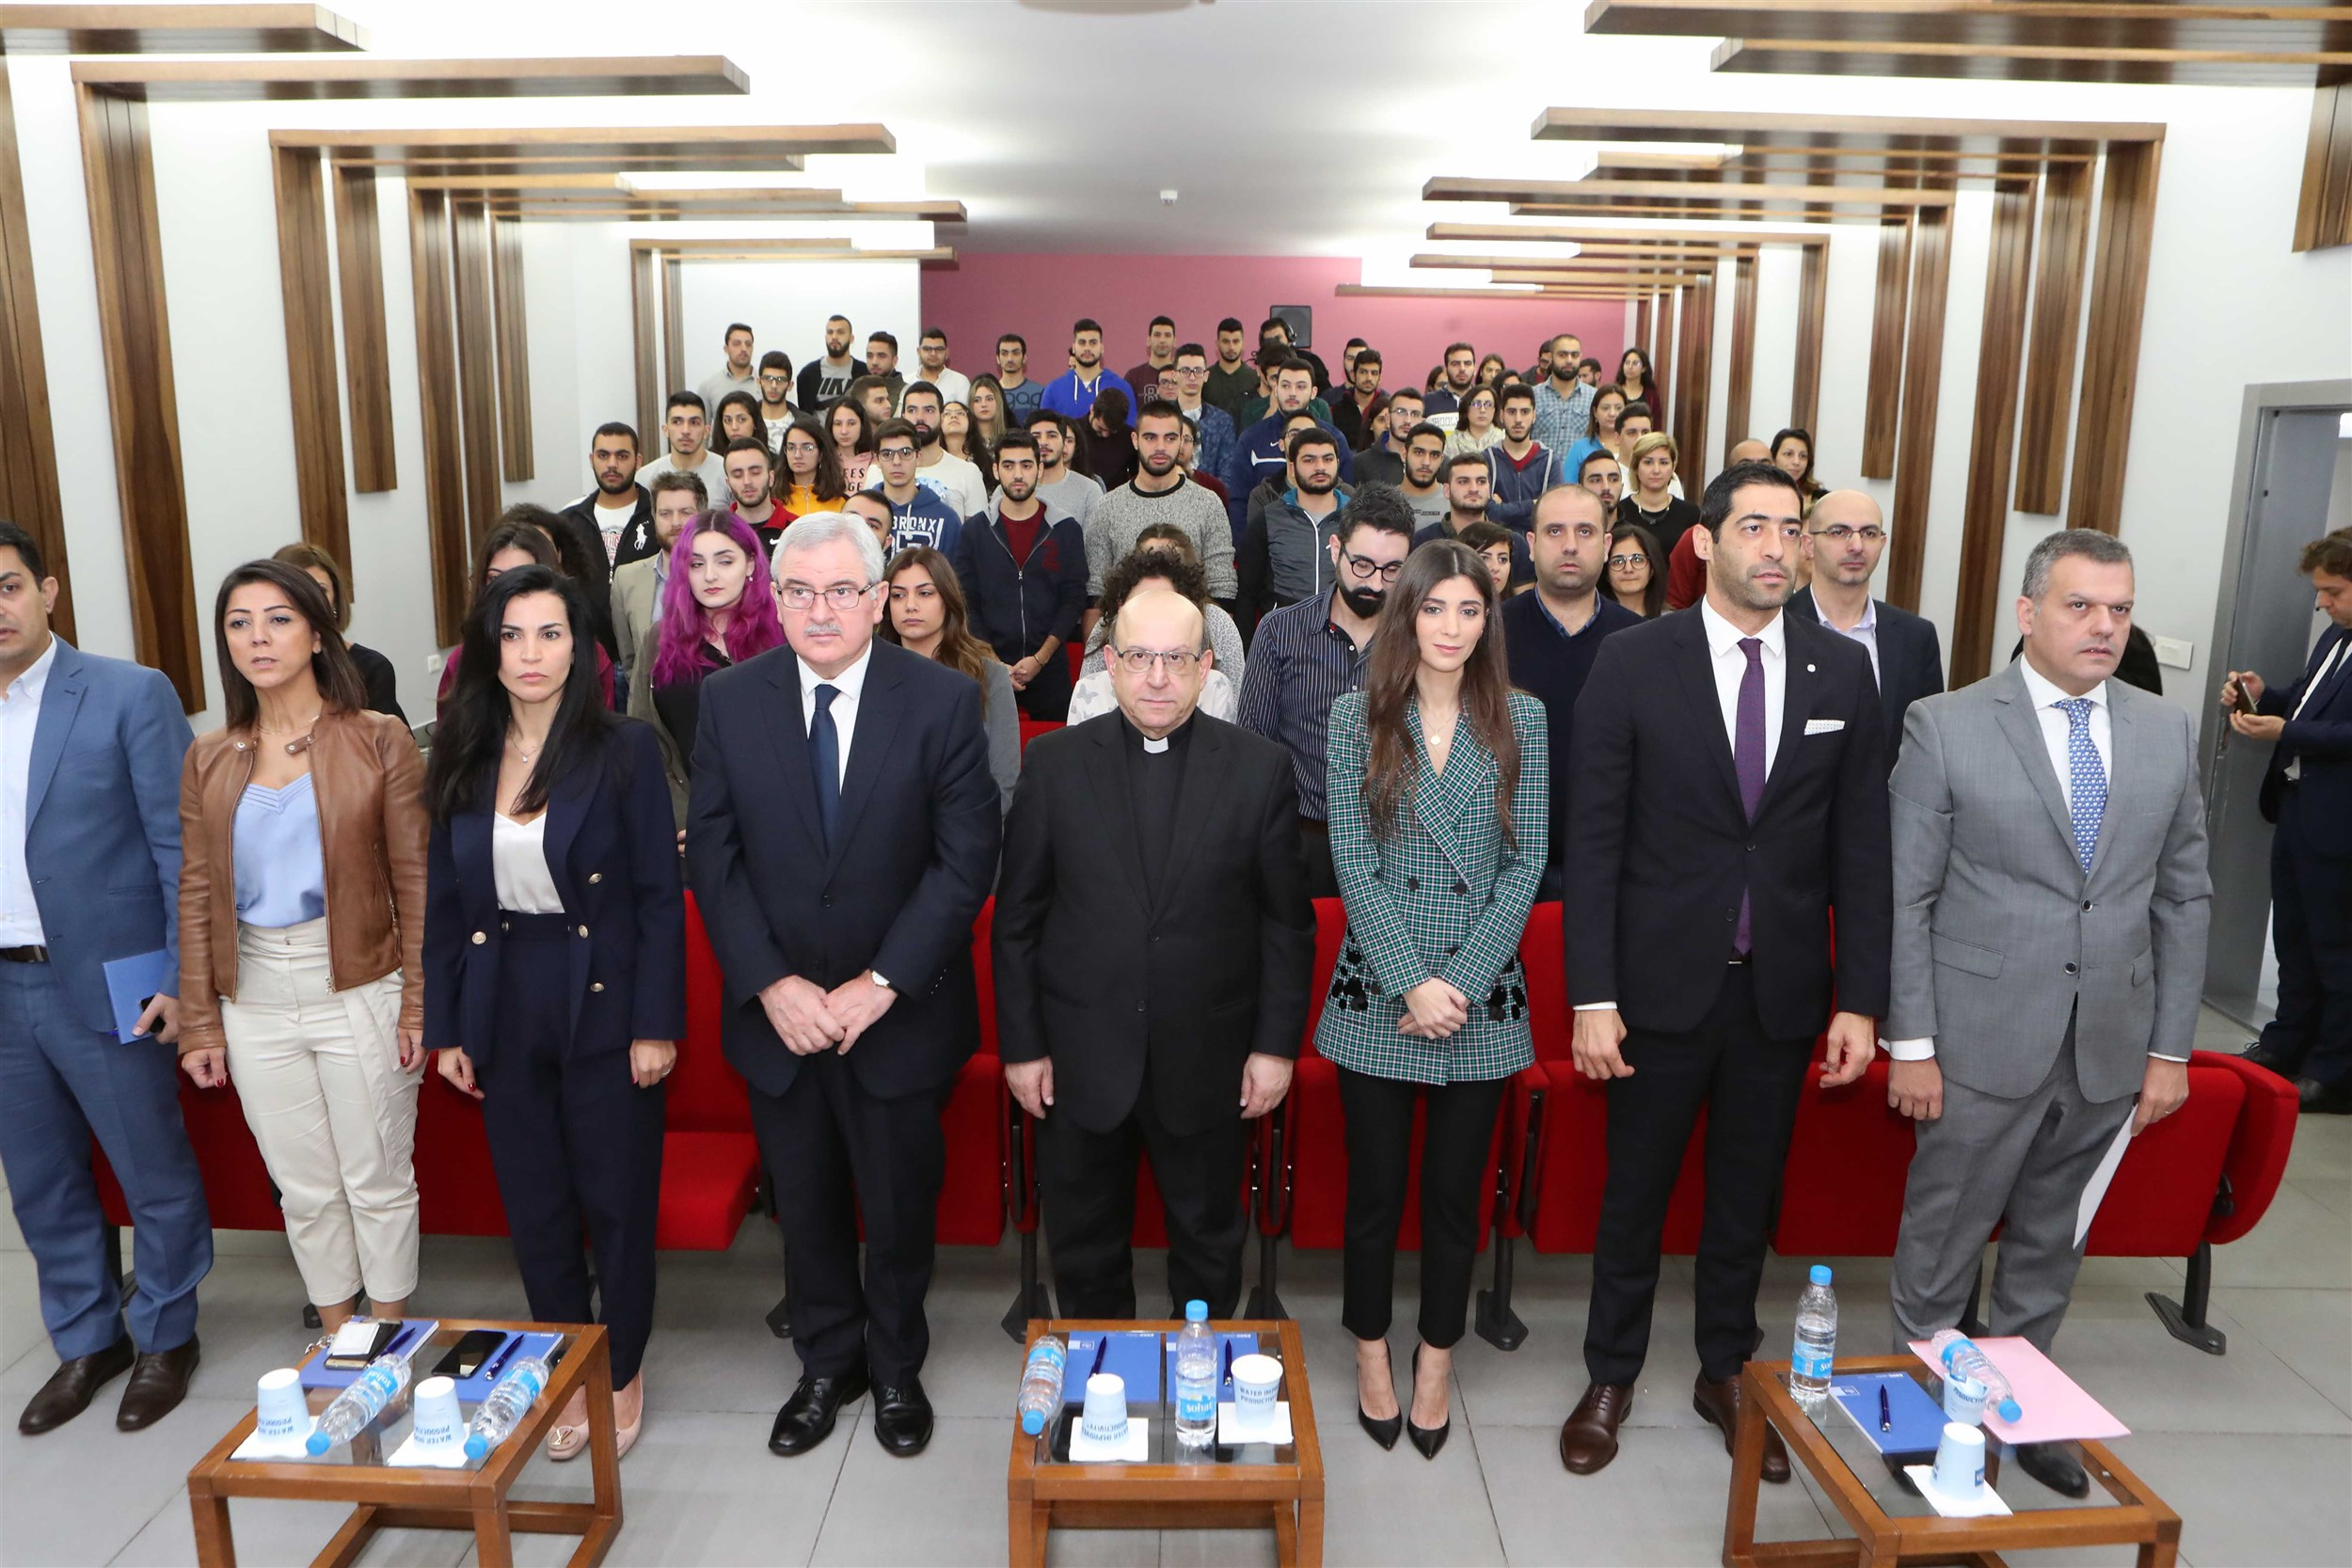 president of usek father professor georges hobeika, mrs inas jarmakani, minister jean oghassapian, member of parliament elias hankash, mr. elias abou fadel, head of the department of science and technology dr. barbar zeghondi stand for the lebanese national anthem.